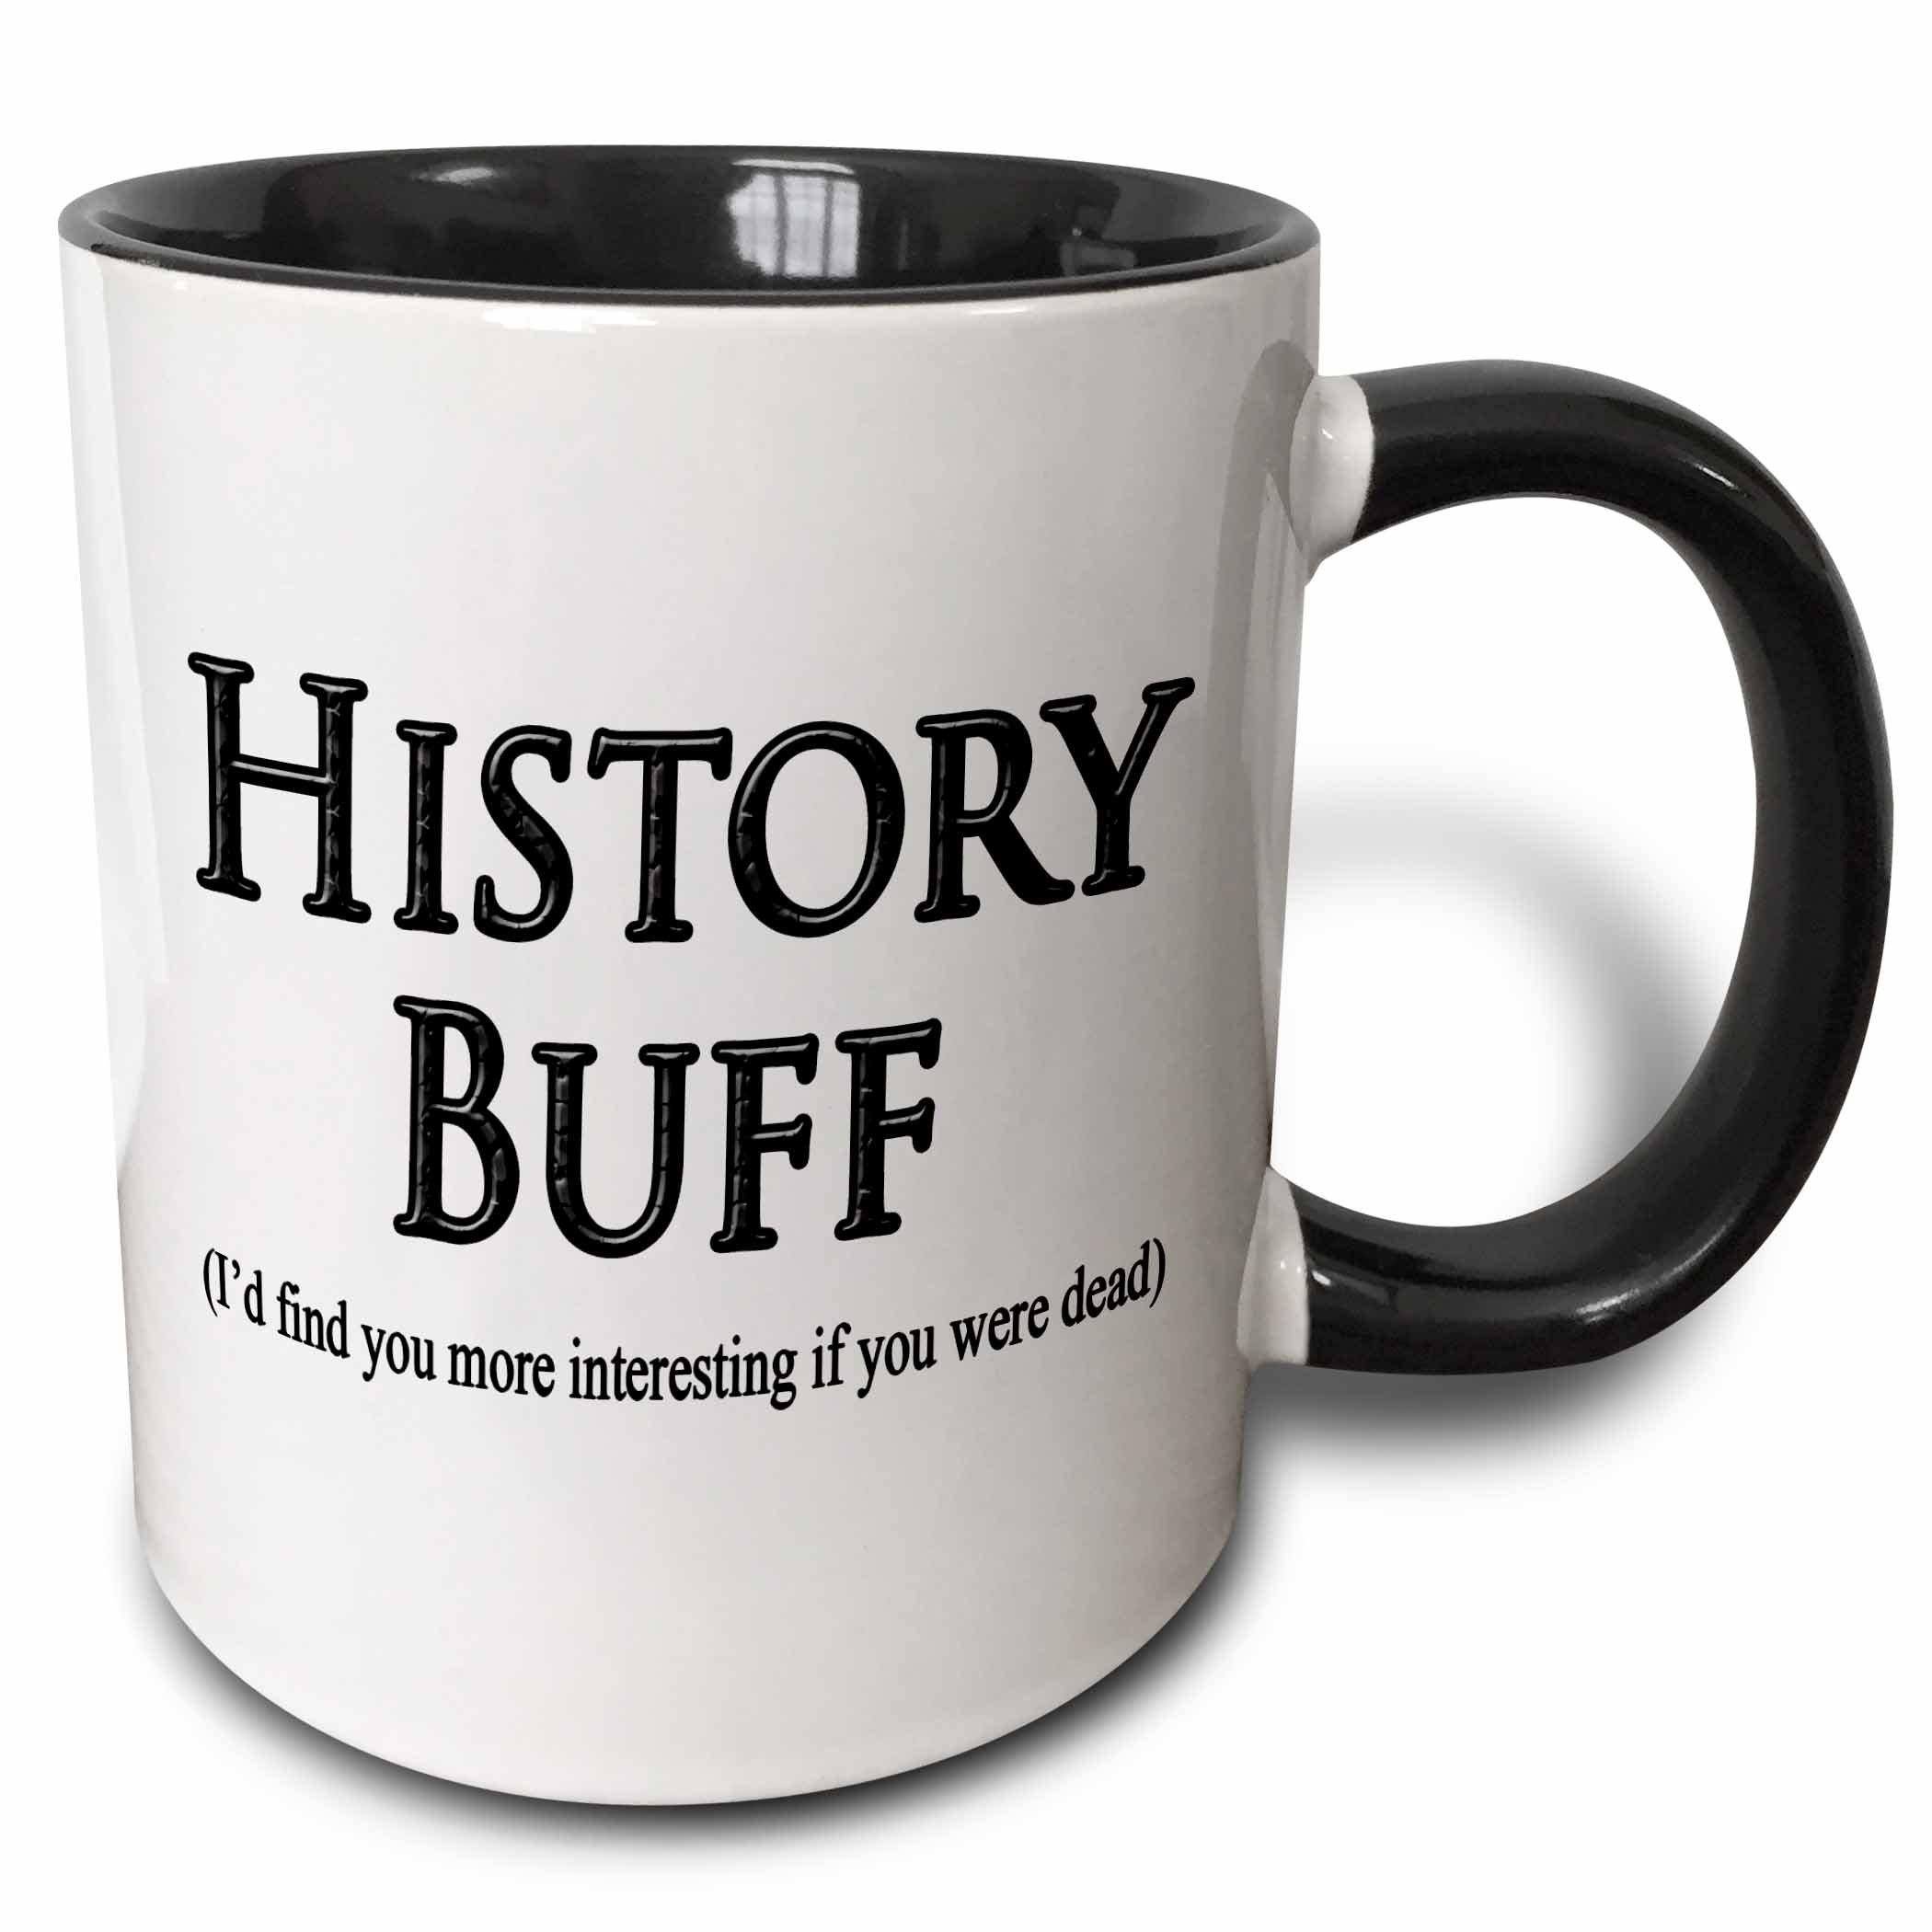 Xmas gifts for history buffs